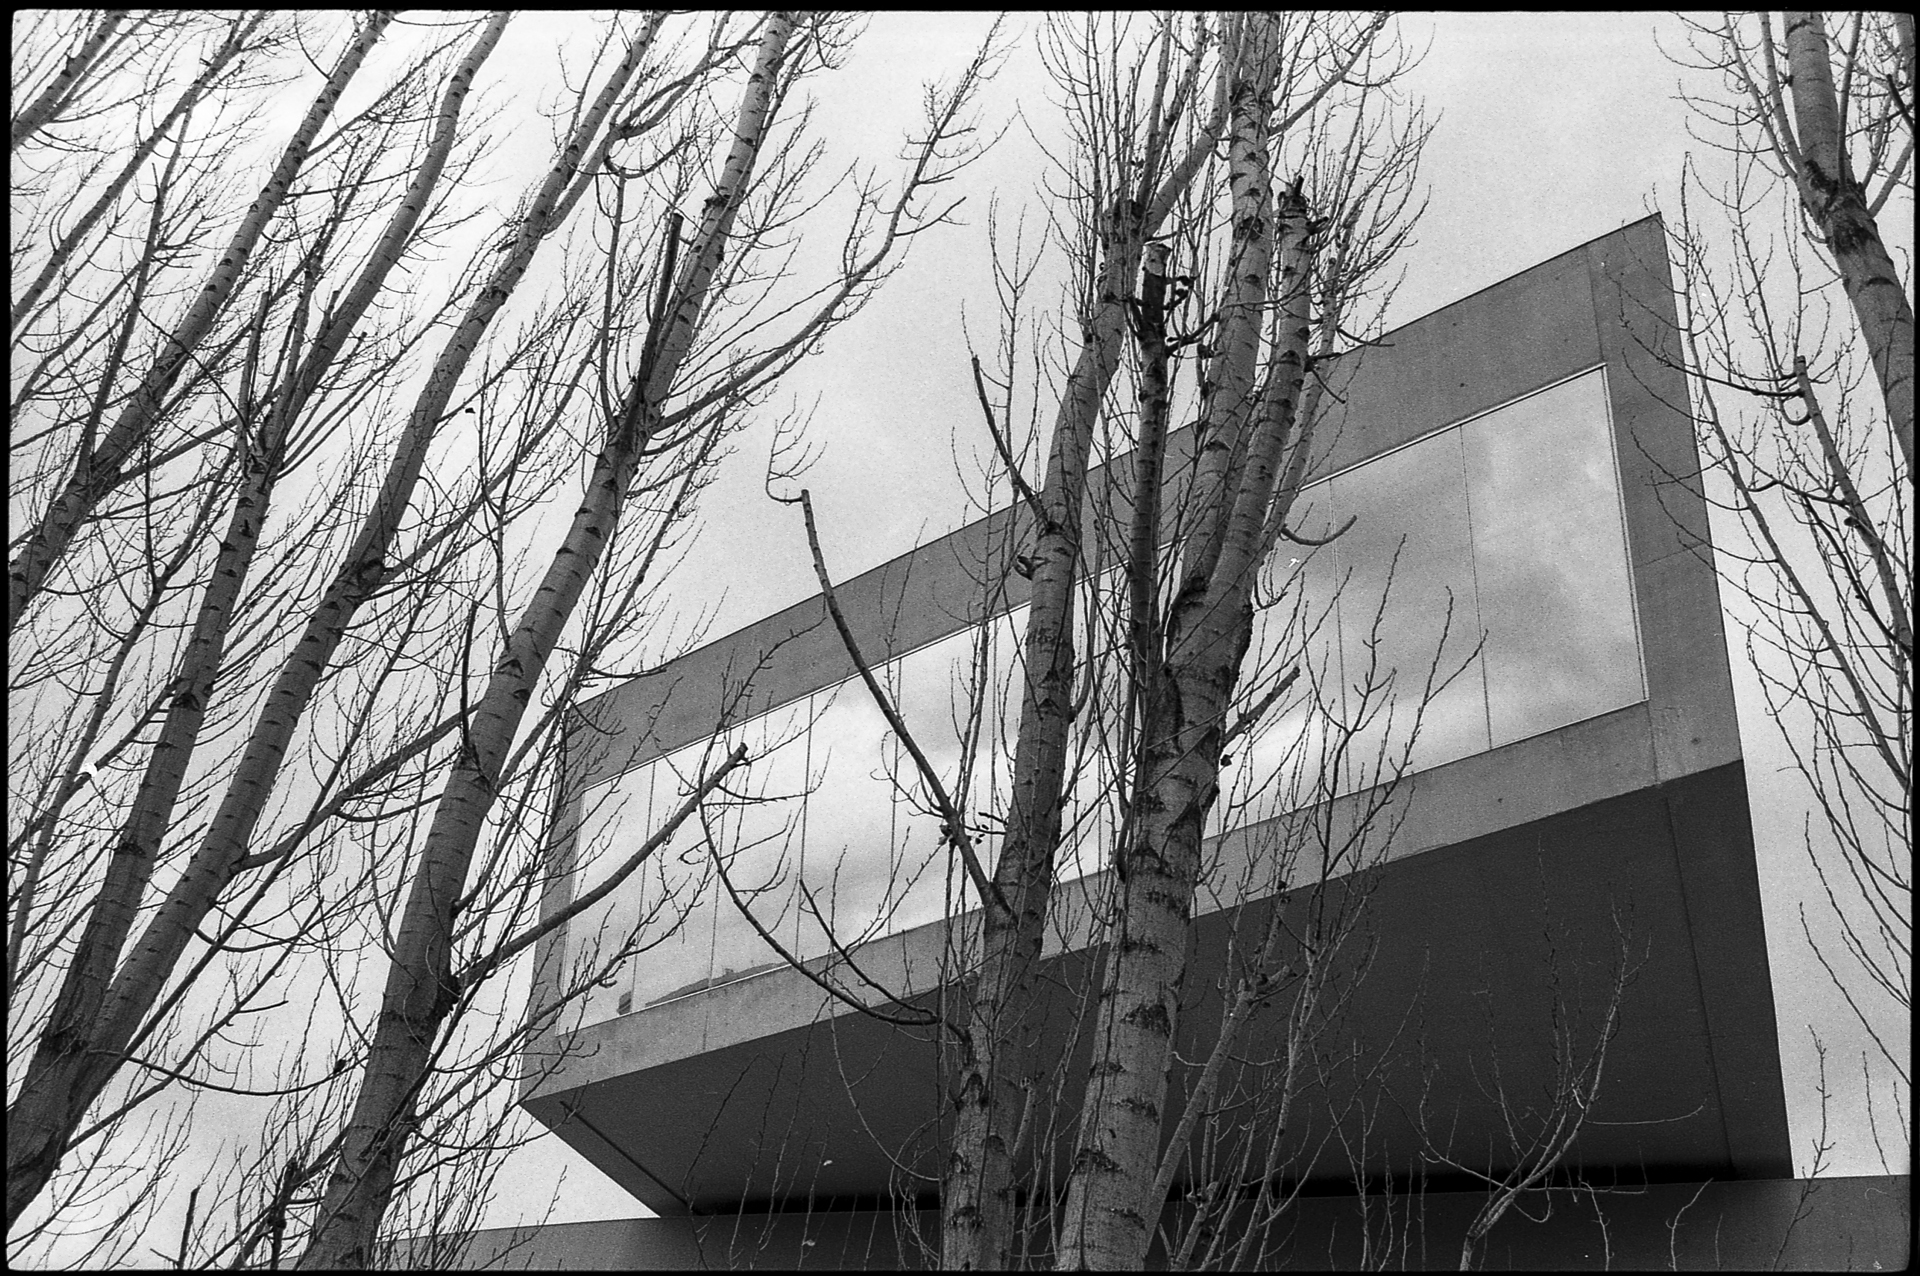 Museo MAXXI / Details